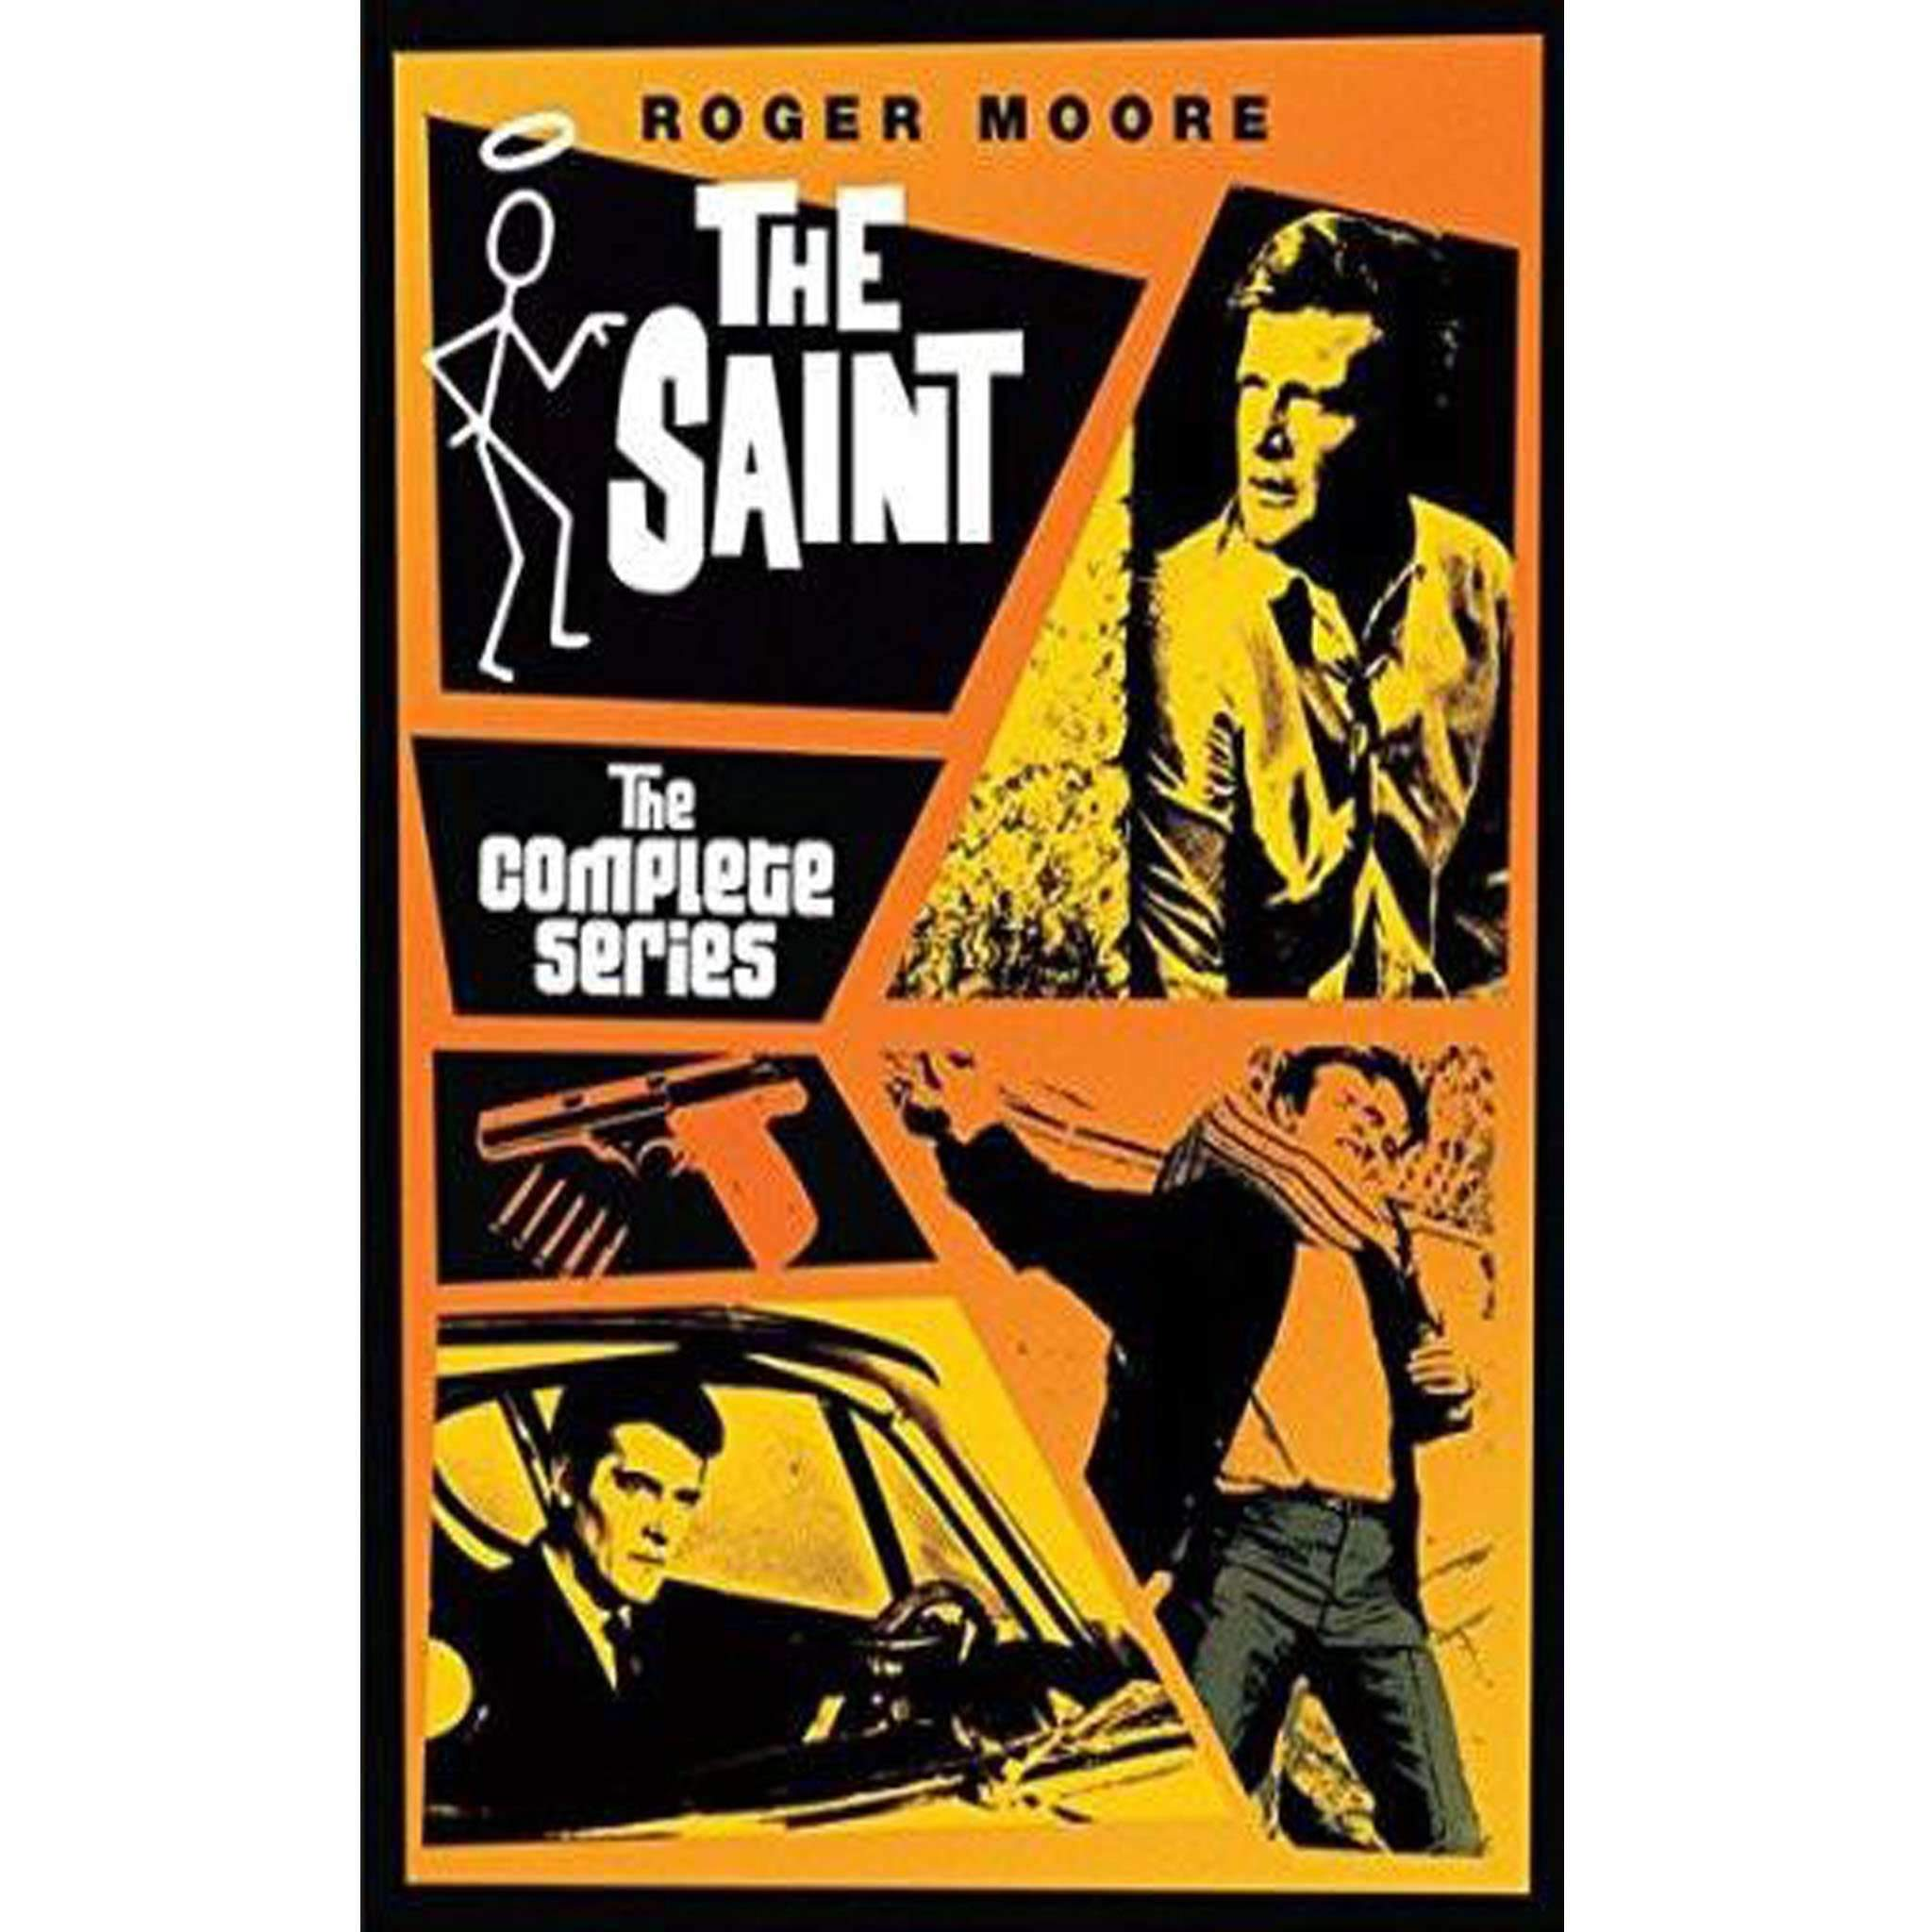 The Saint DVD Complete Series Box Set Shout! Factory DVDs & Blu-ray Discs